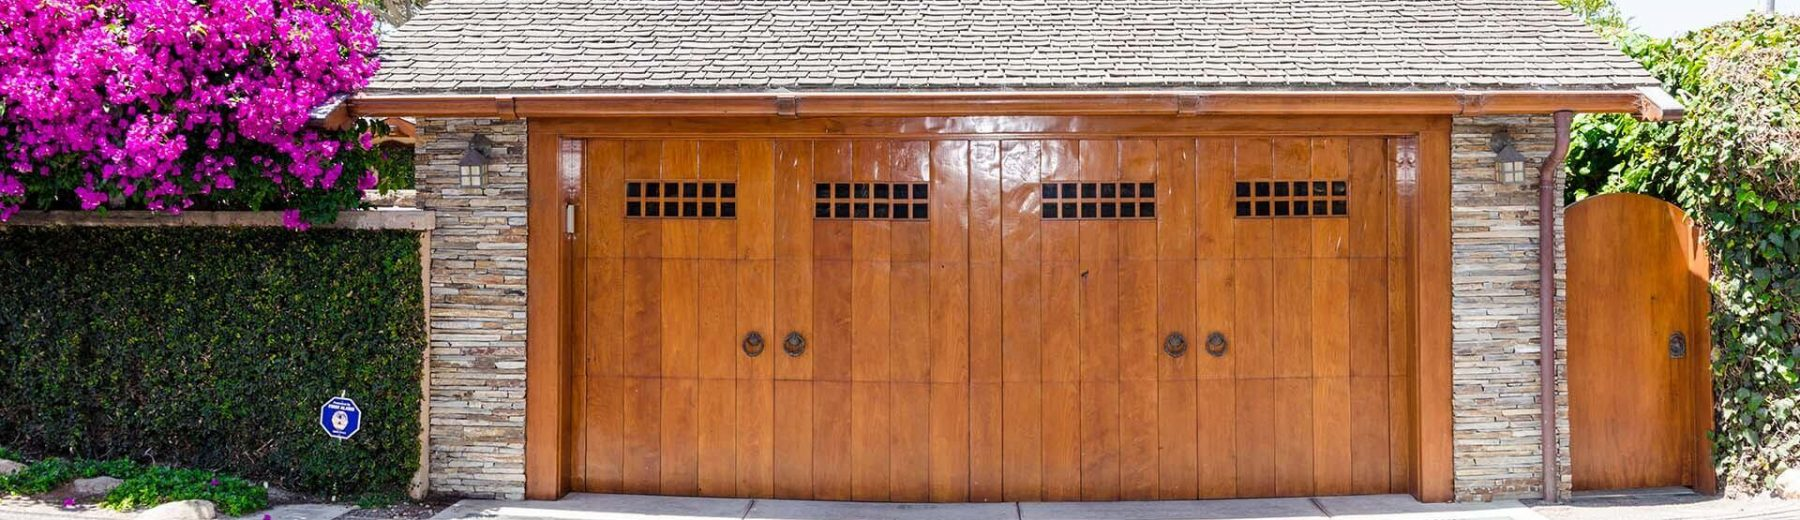 Garage Door Services and Products